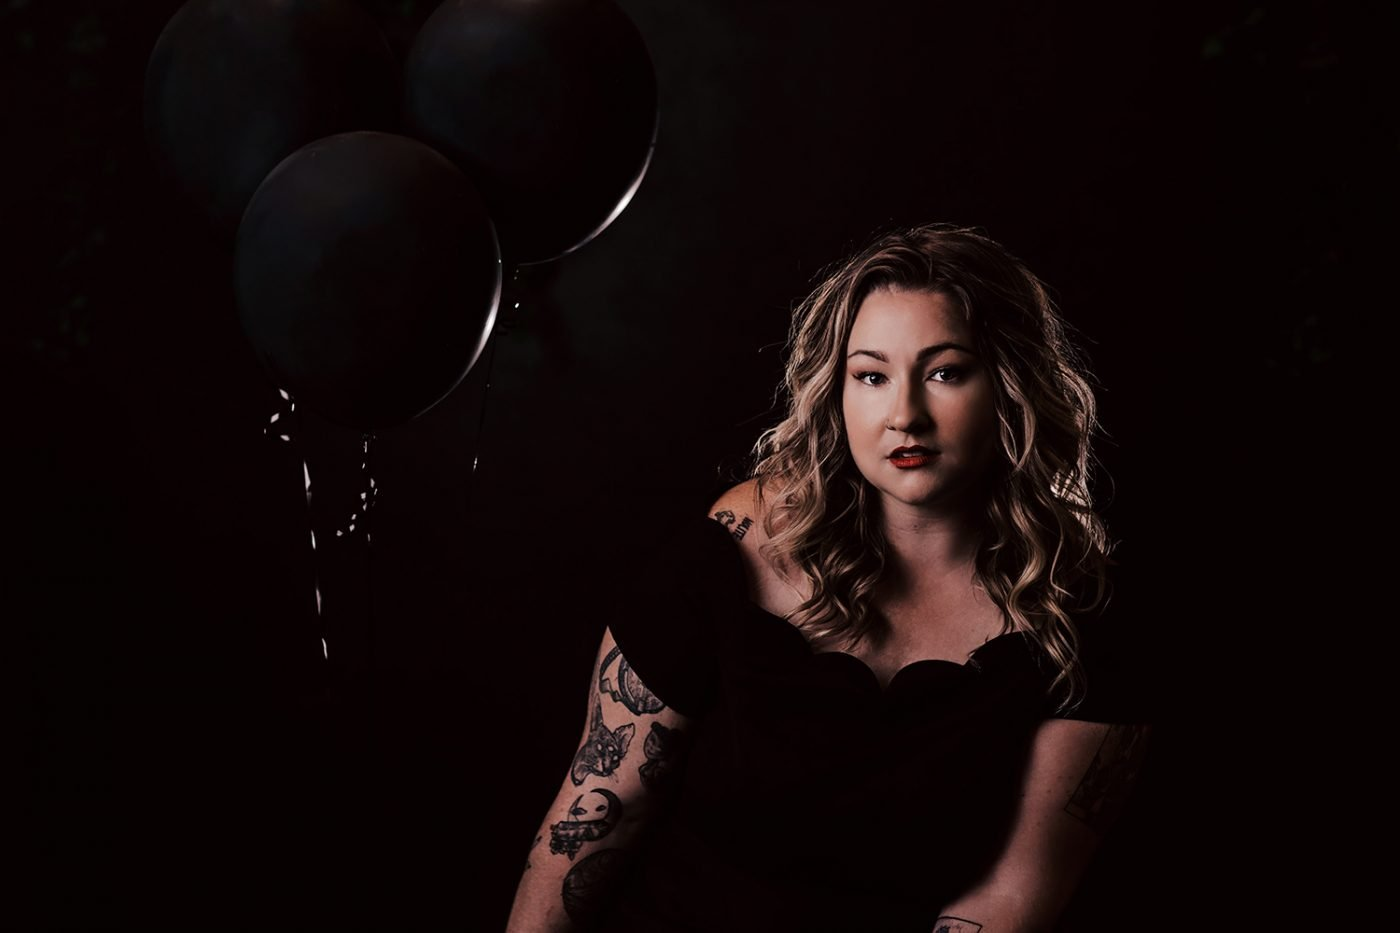 woman with black balloons wearing black dress on black background music video